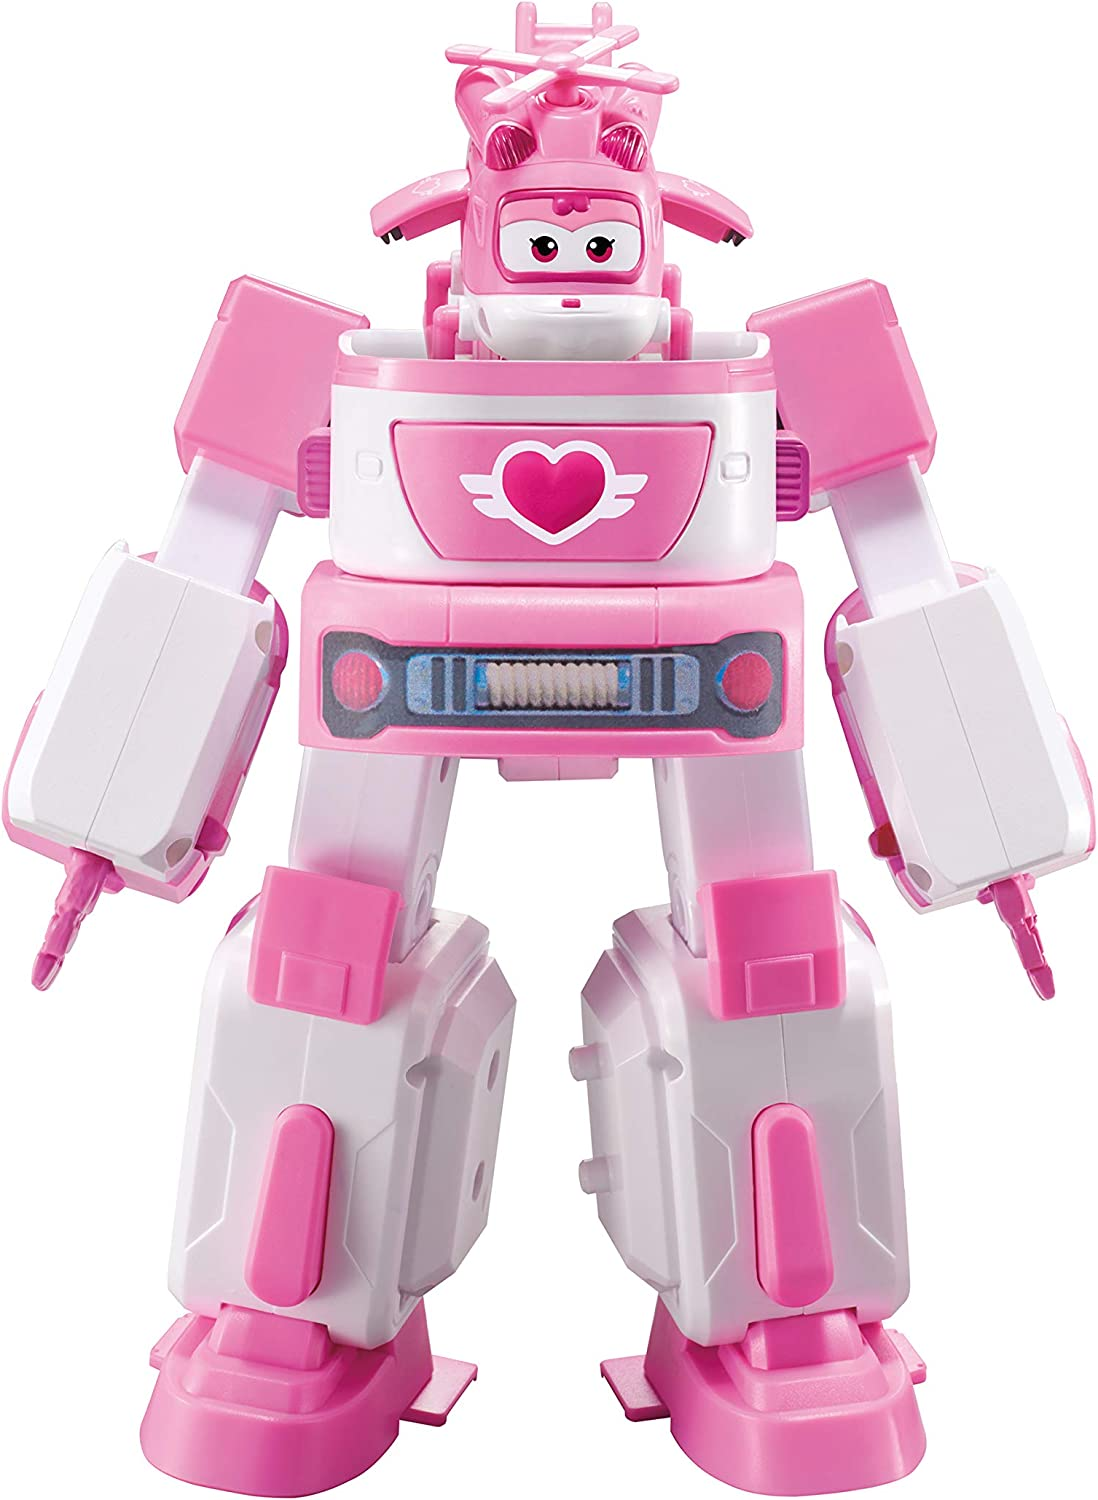 Super Wings Deluxe Transforming VehicleSeries 2Dizzy Pink and White.